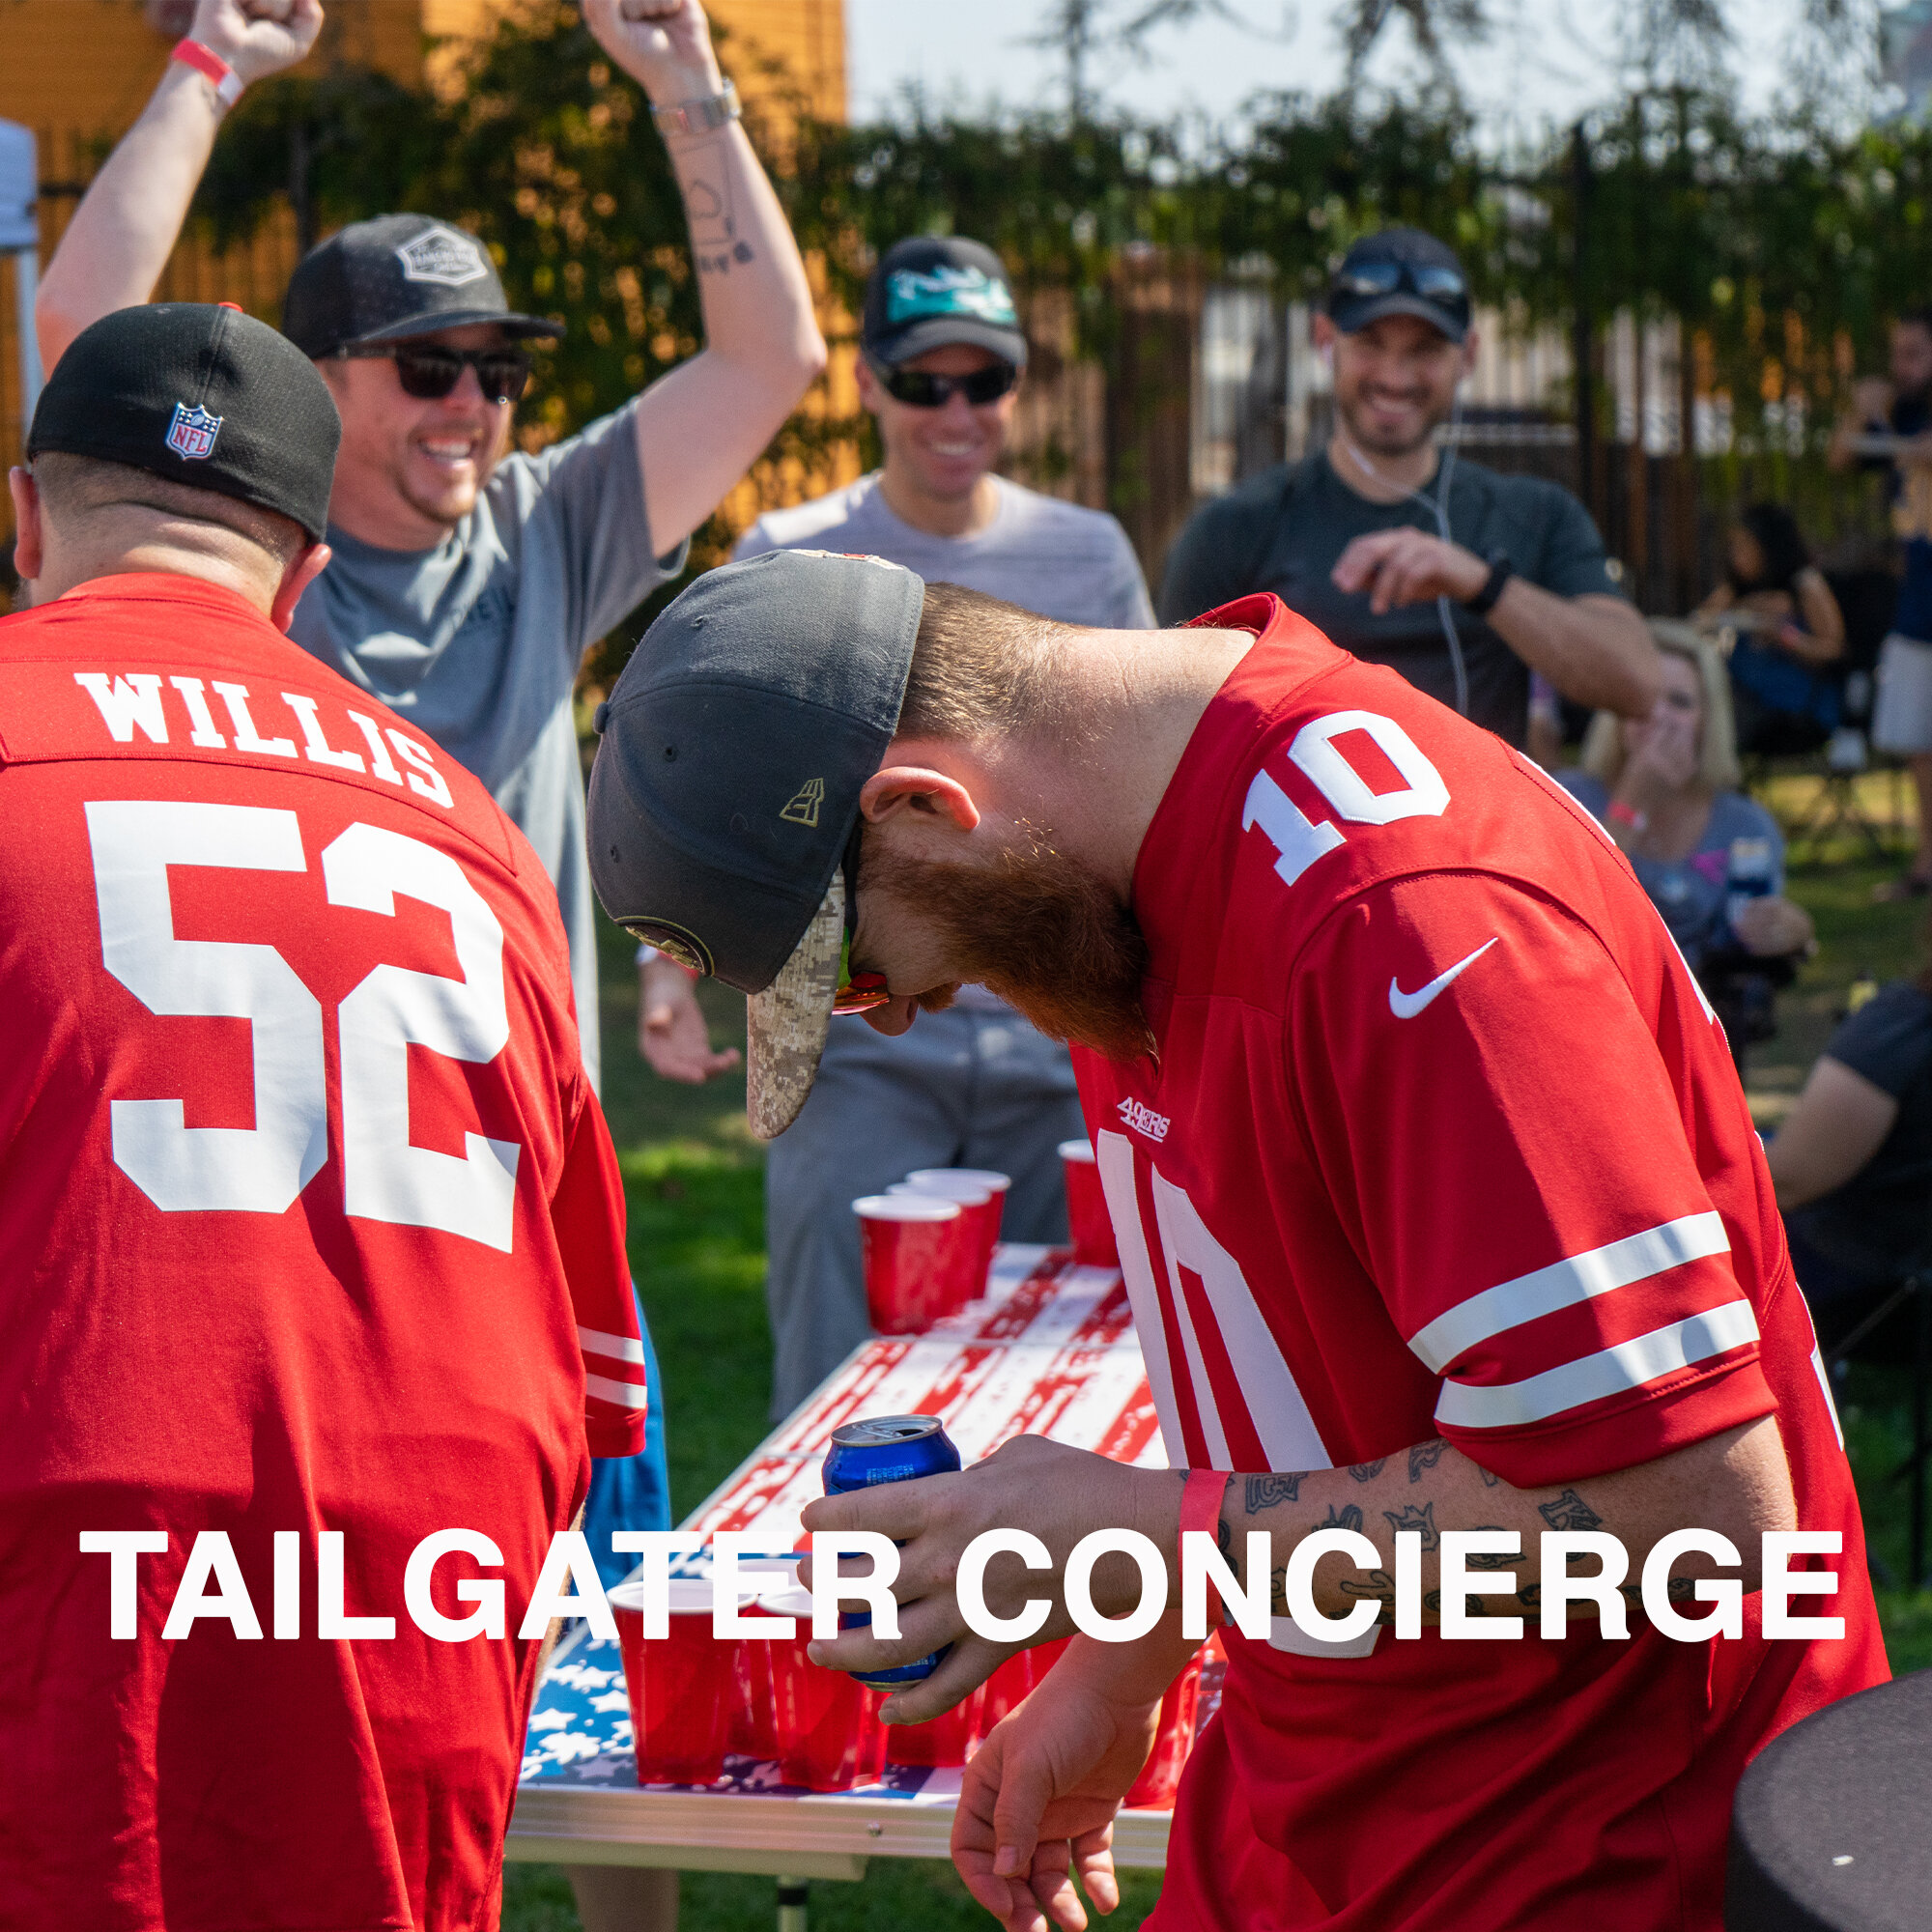 Tailgater Concierge Project Square.jpg